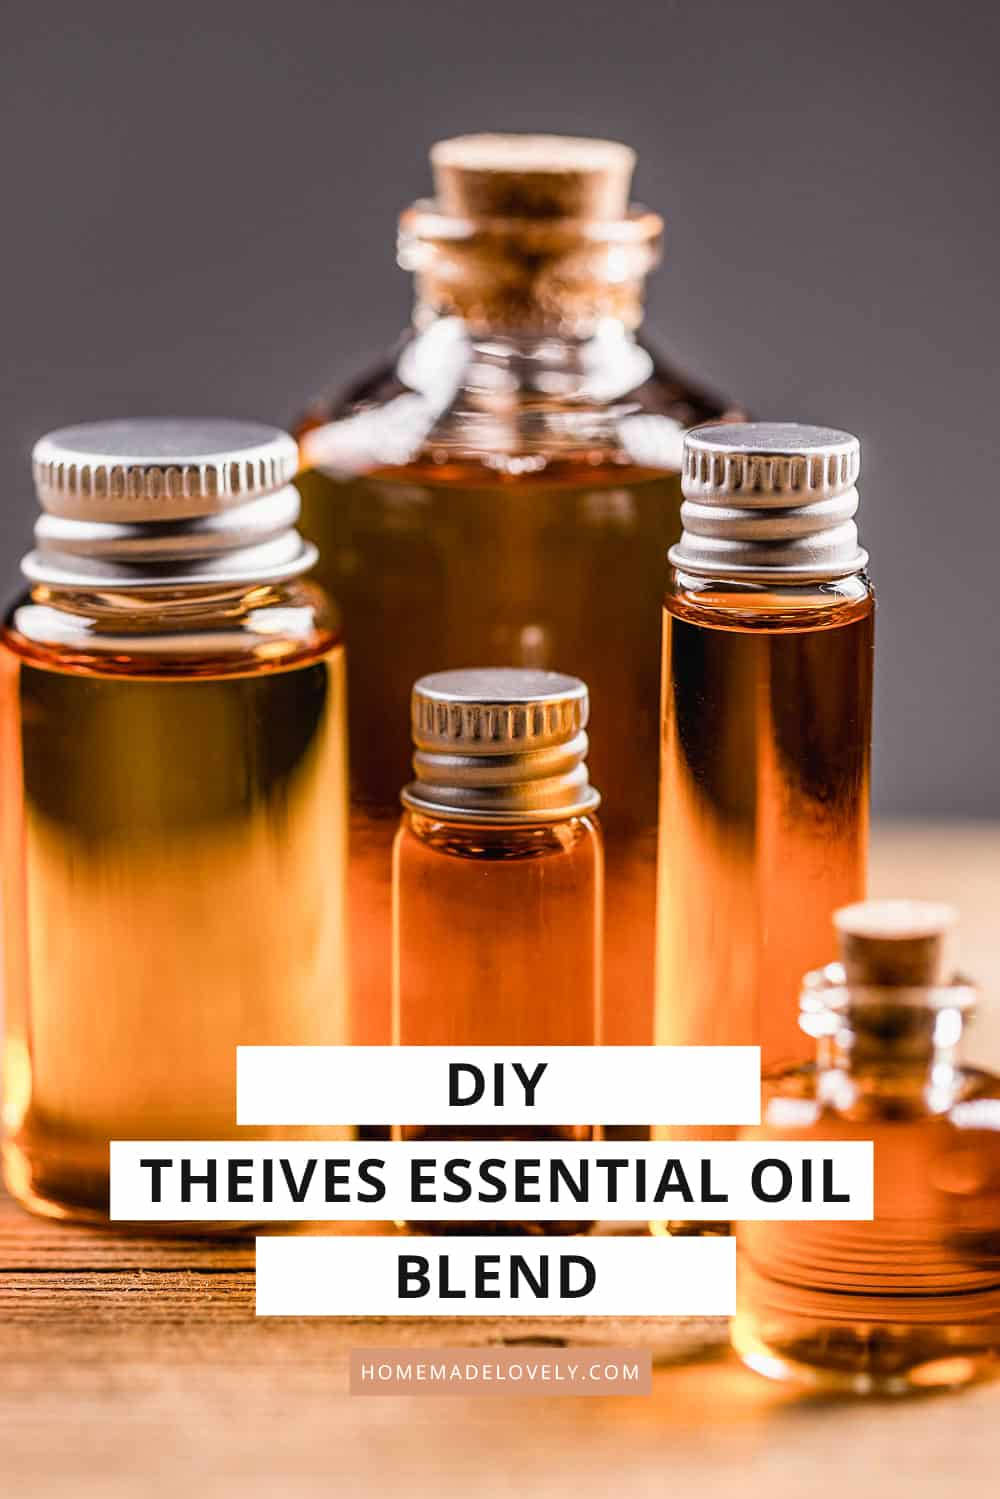 DIY Thieves Essential Oil Blend